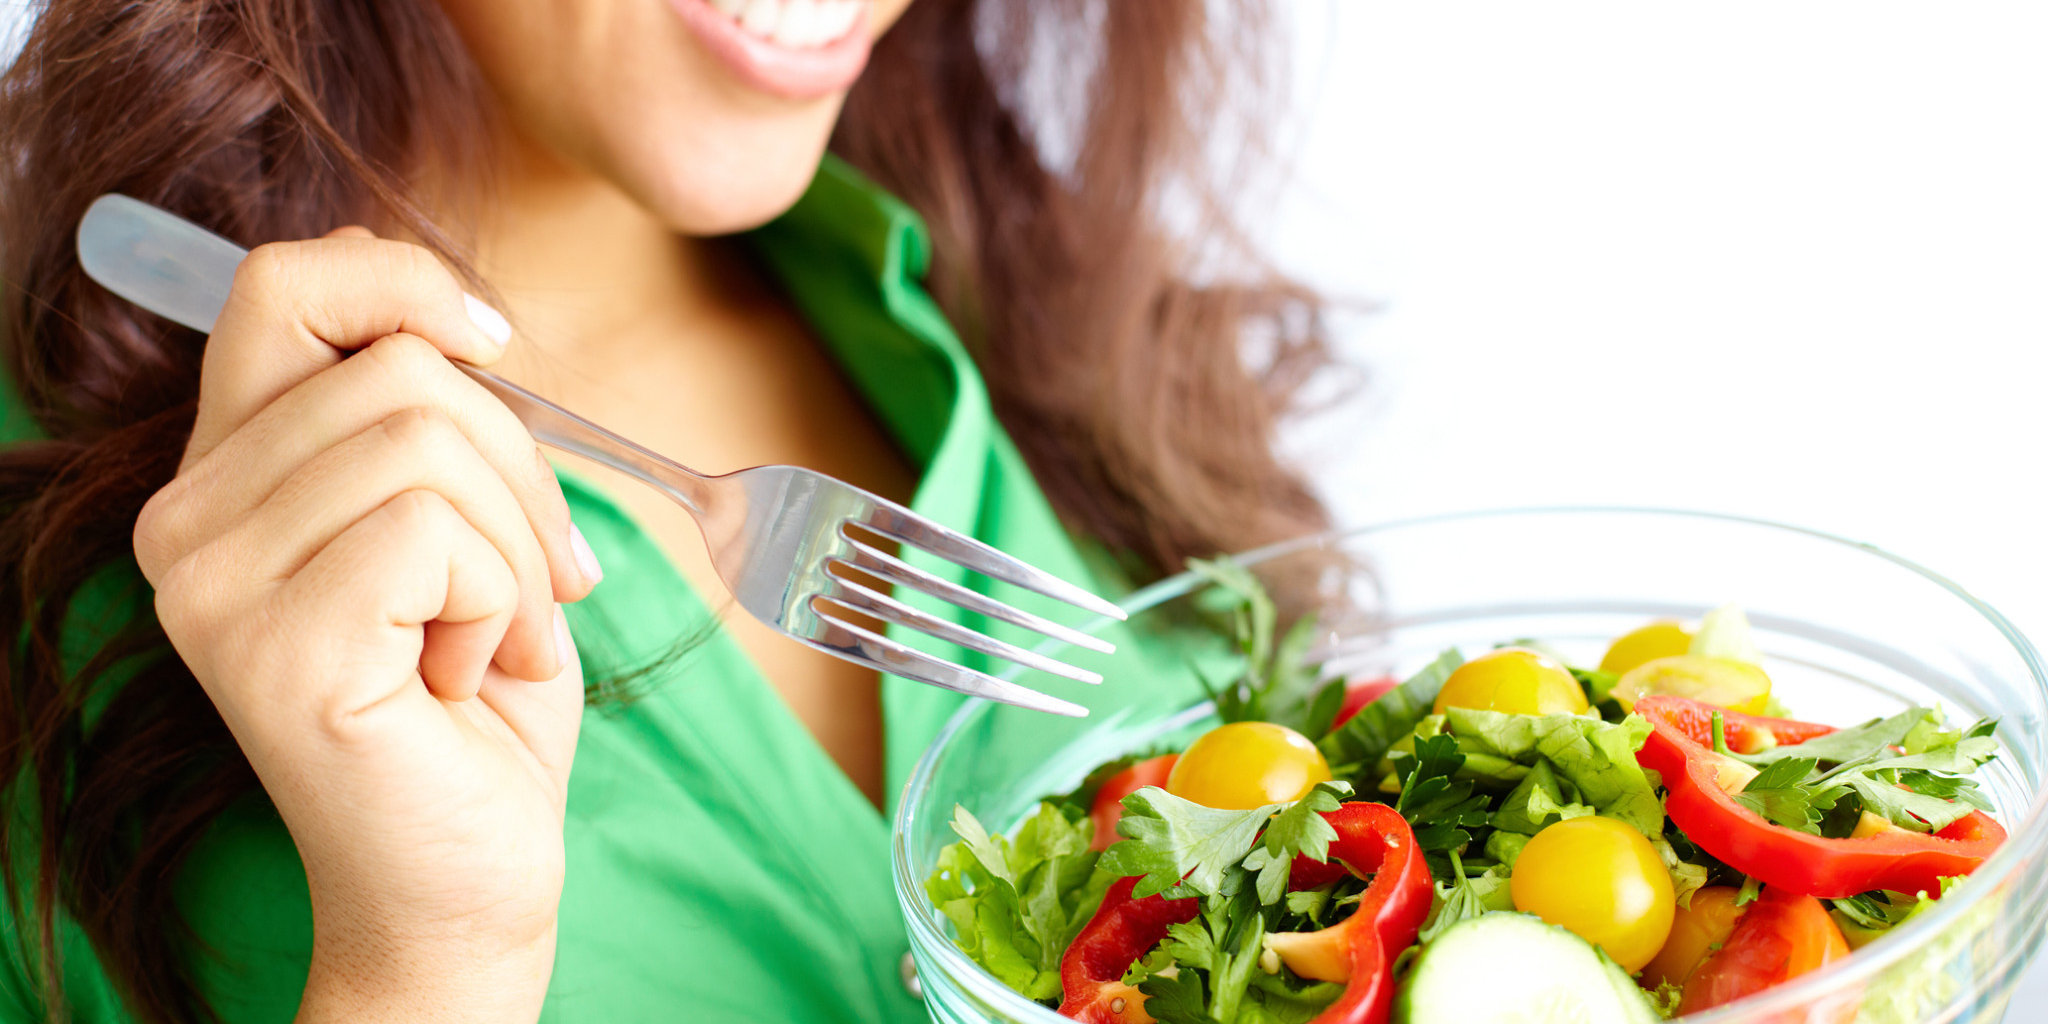 Watch Your Diet   Healthy Hair Tips For Strong, Shiny Hair